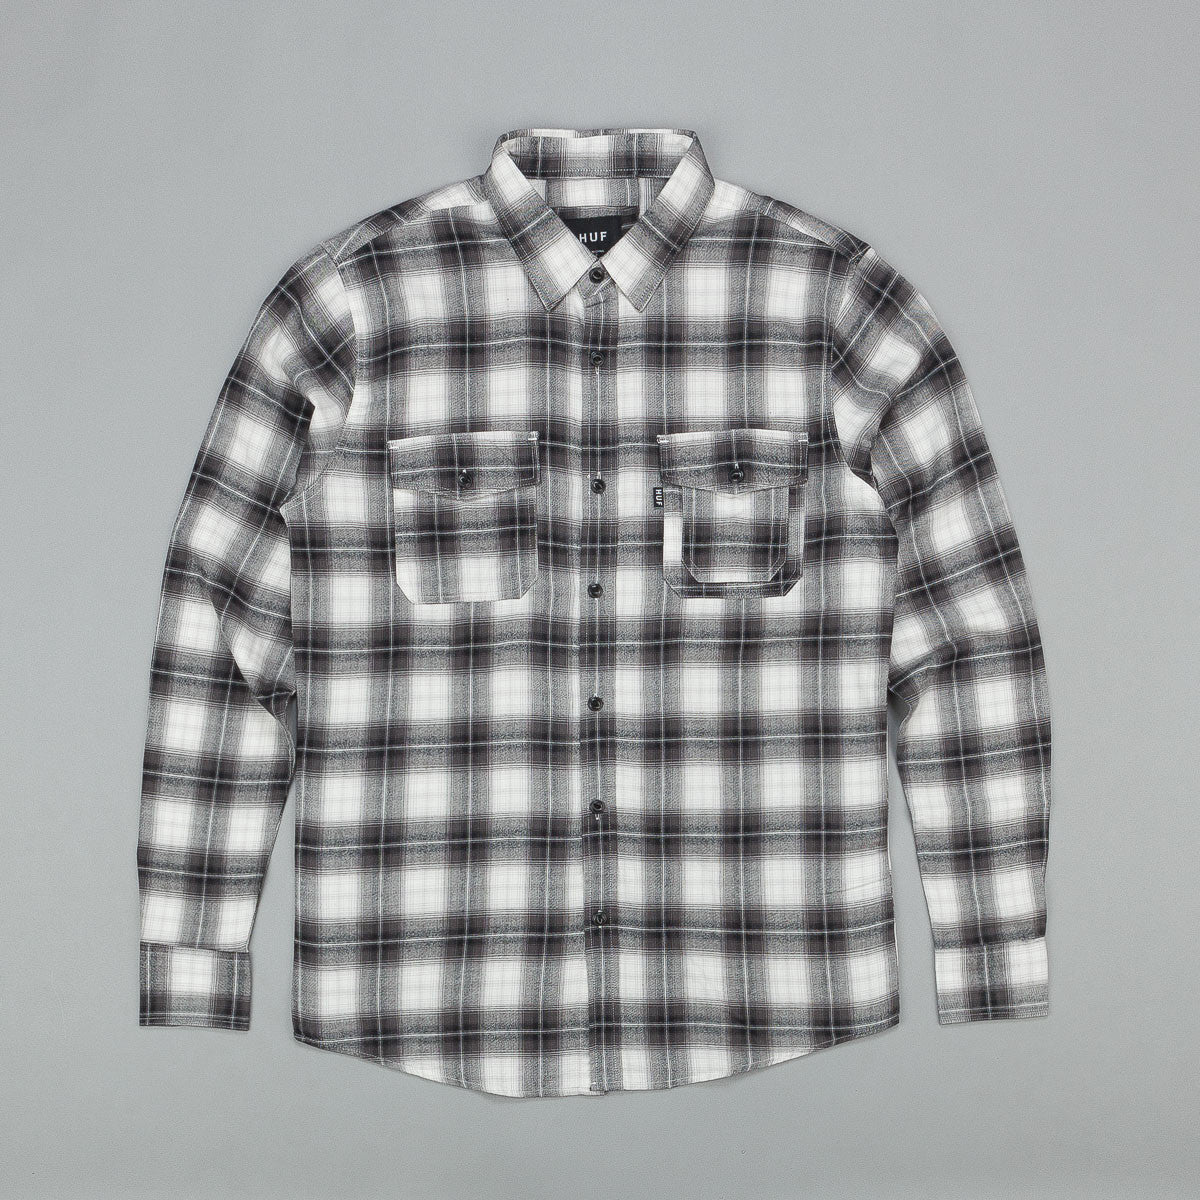 Huf Slauson Plaid Long Sleeve Shirt